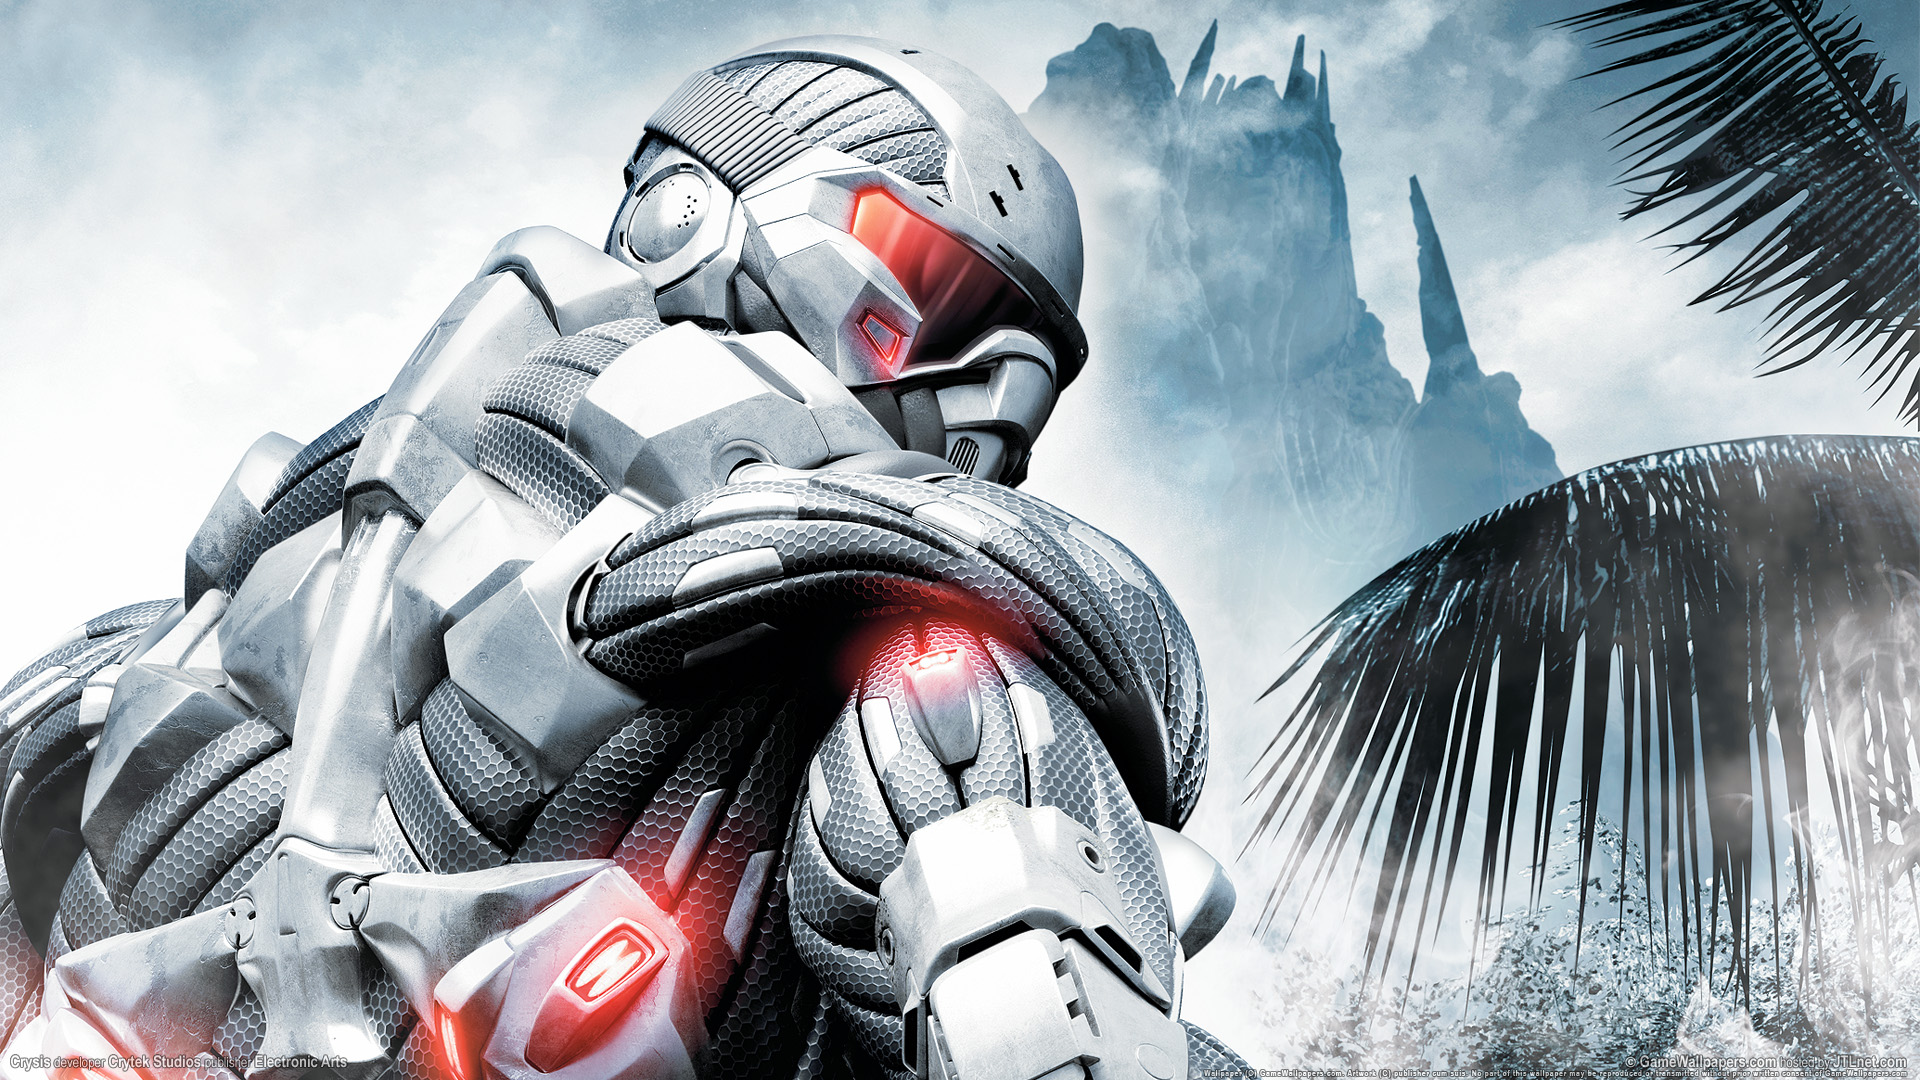 Crysis Game HD 1002.06 Kb